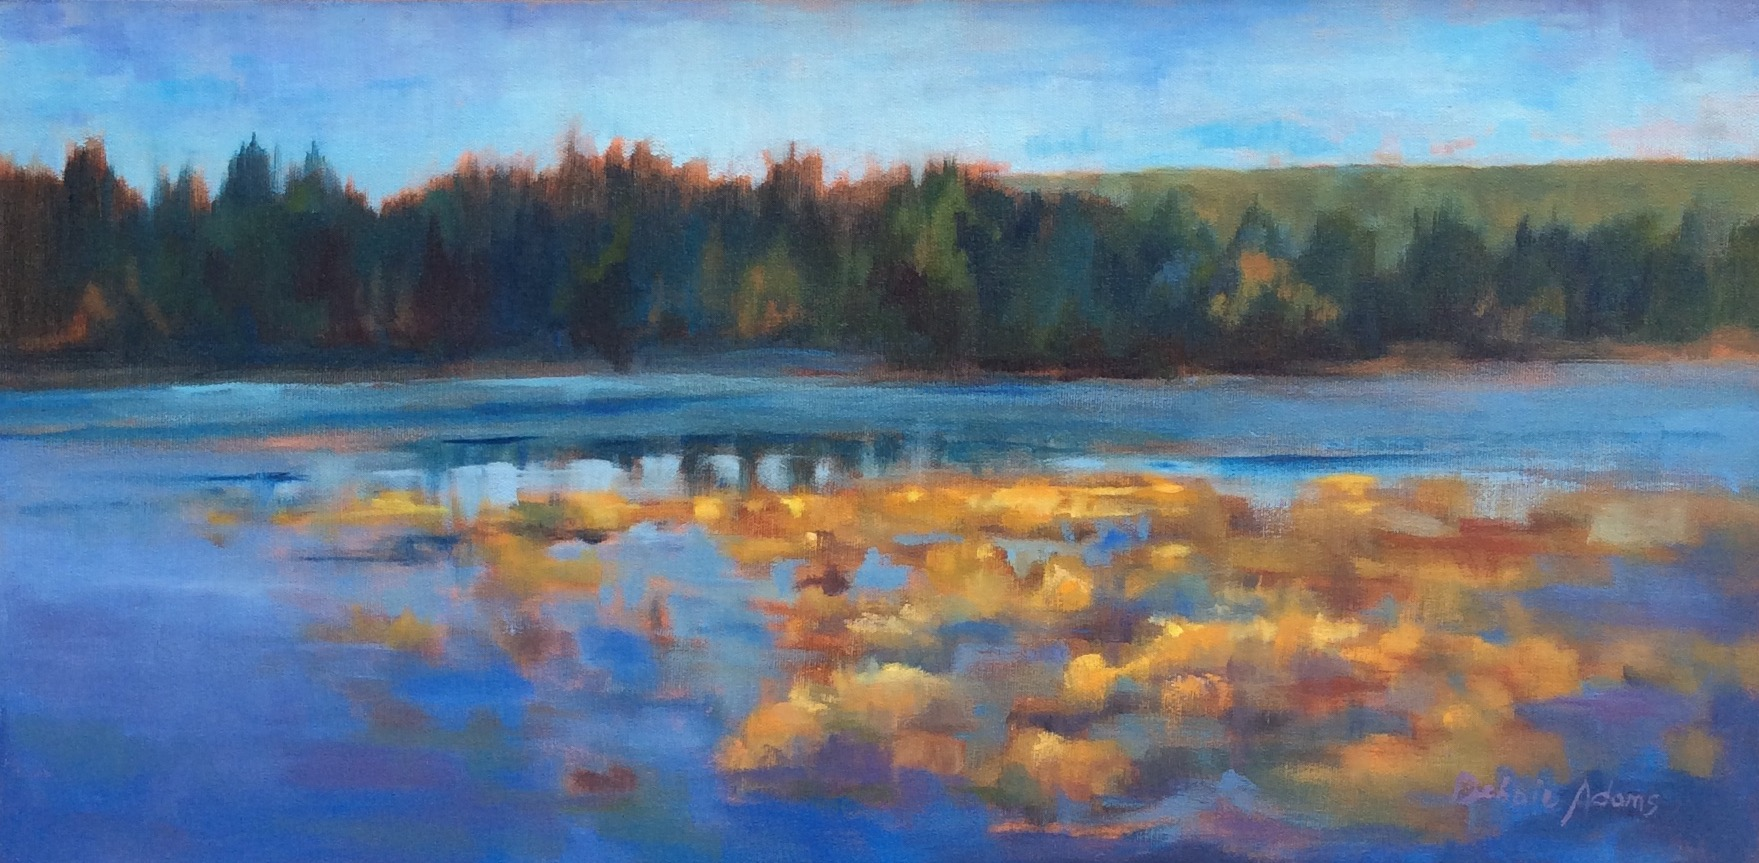 Golden Glenmore - 12x24 oil